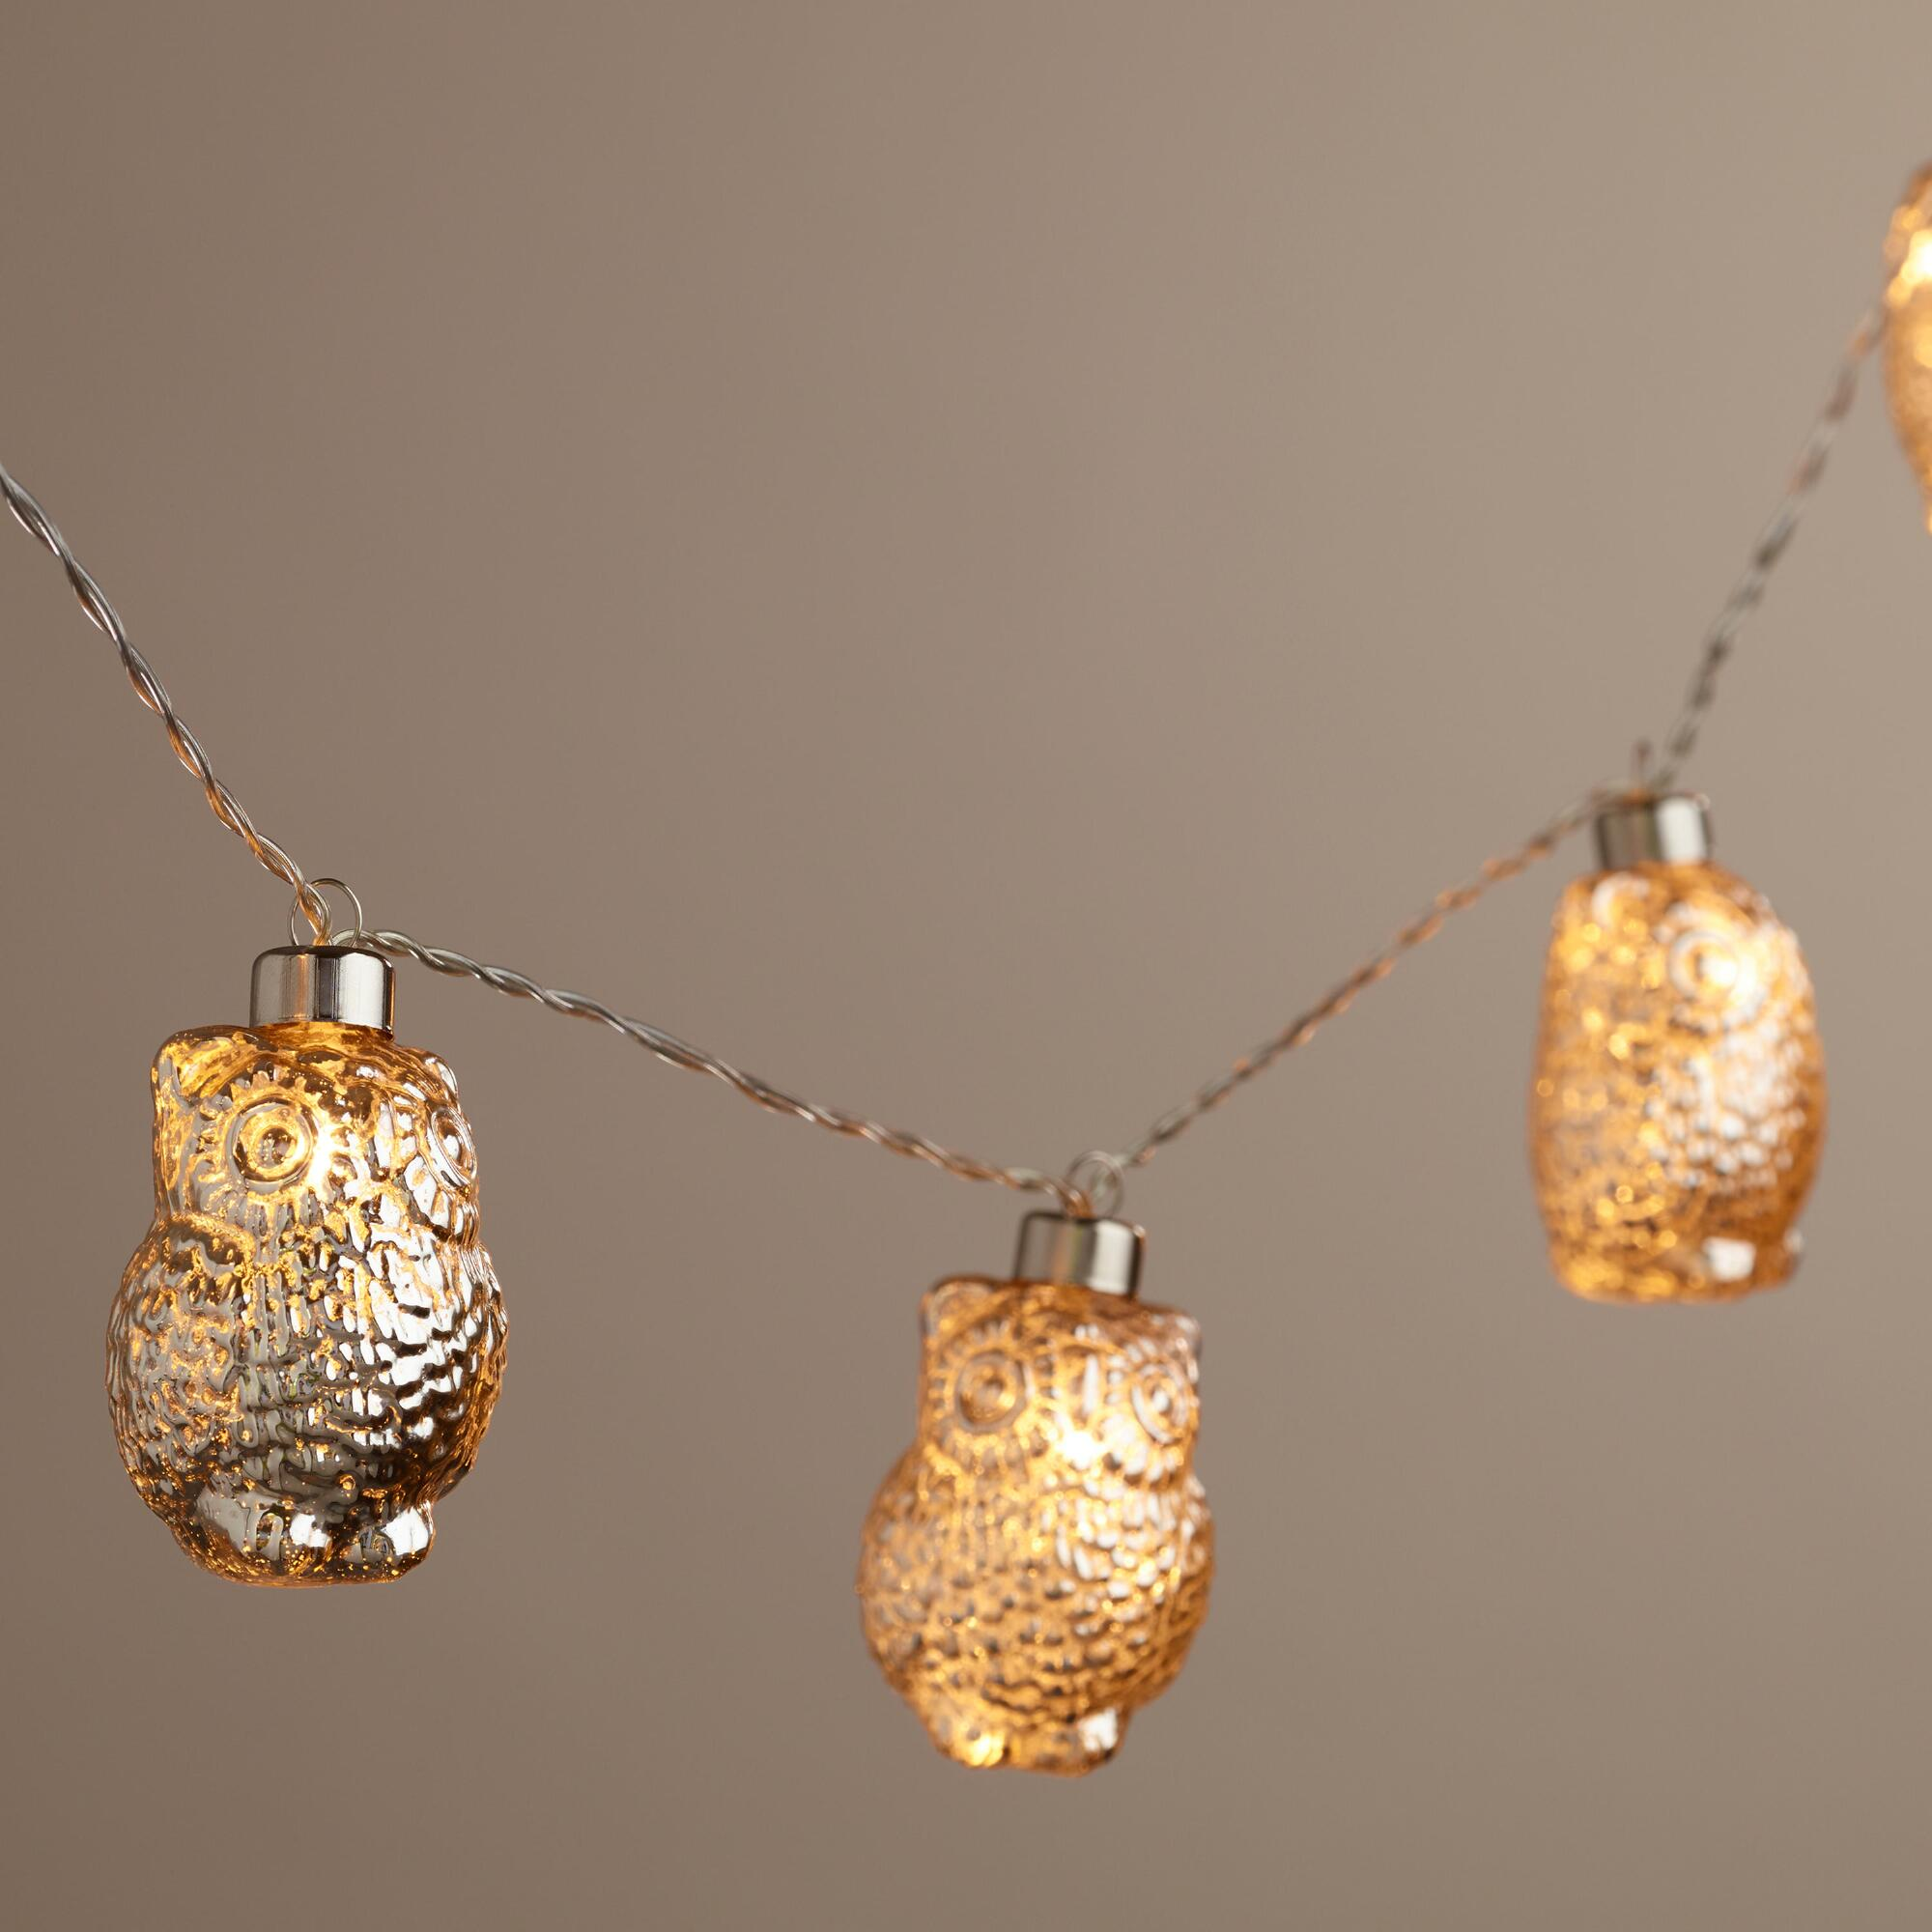 How To Make String Lights Battery Powered : Mercury Glass Owl LED 10-Bulb Battery Operated String Lights World Market